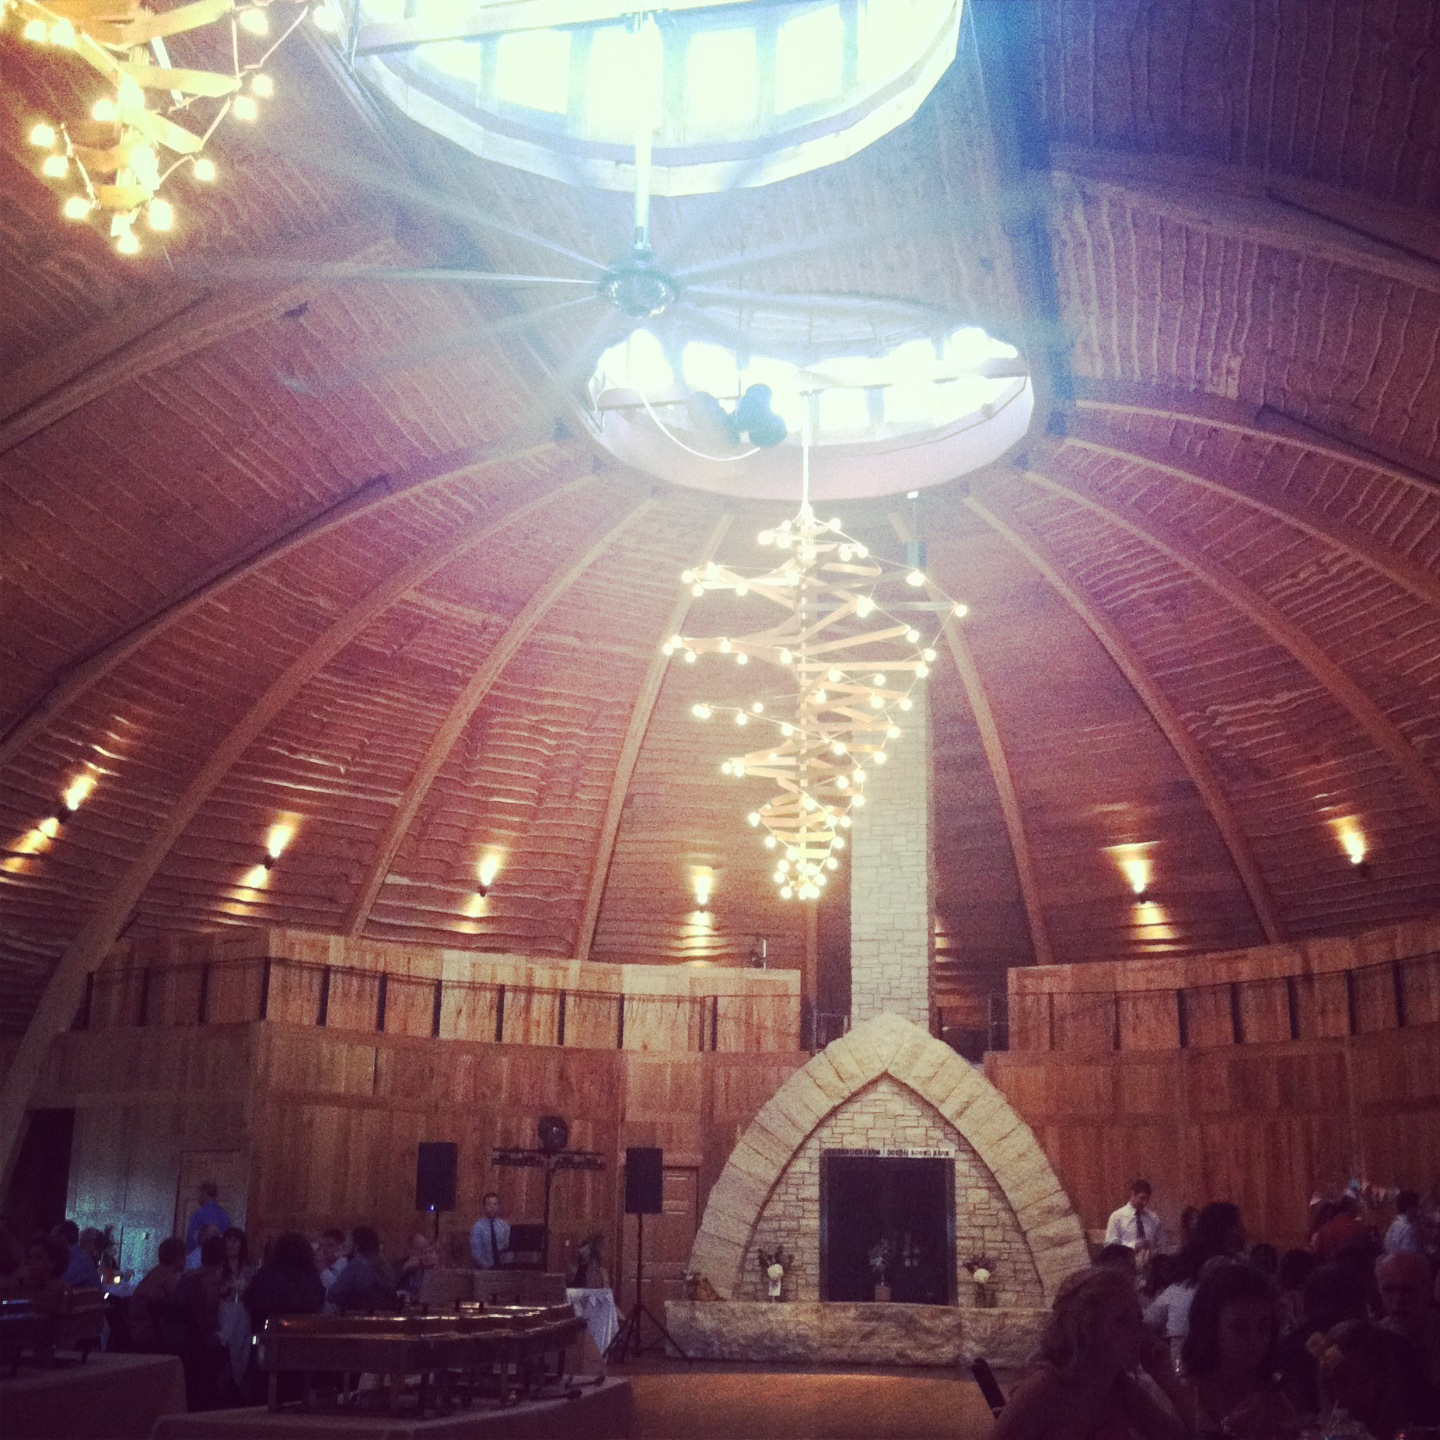 You can't NOT dance in a barn wedding. (Isn't this the most beautiful barn you've ever seen?)